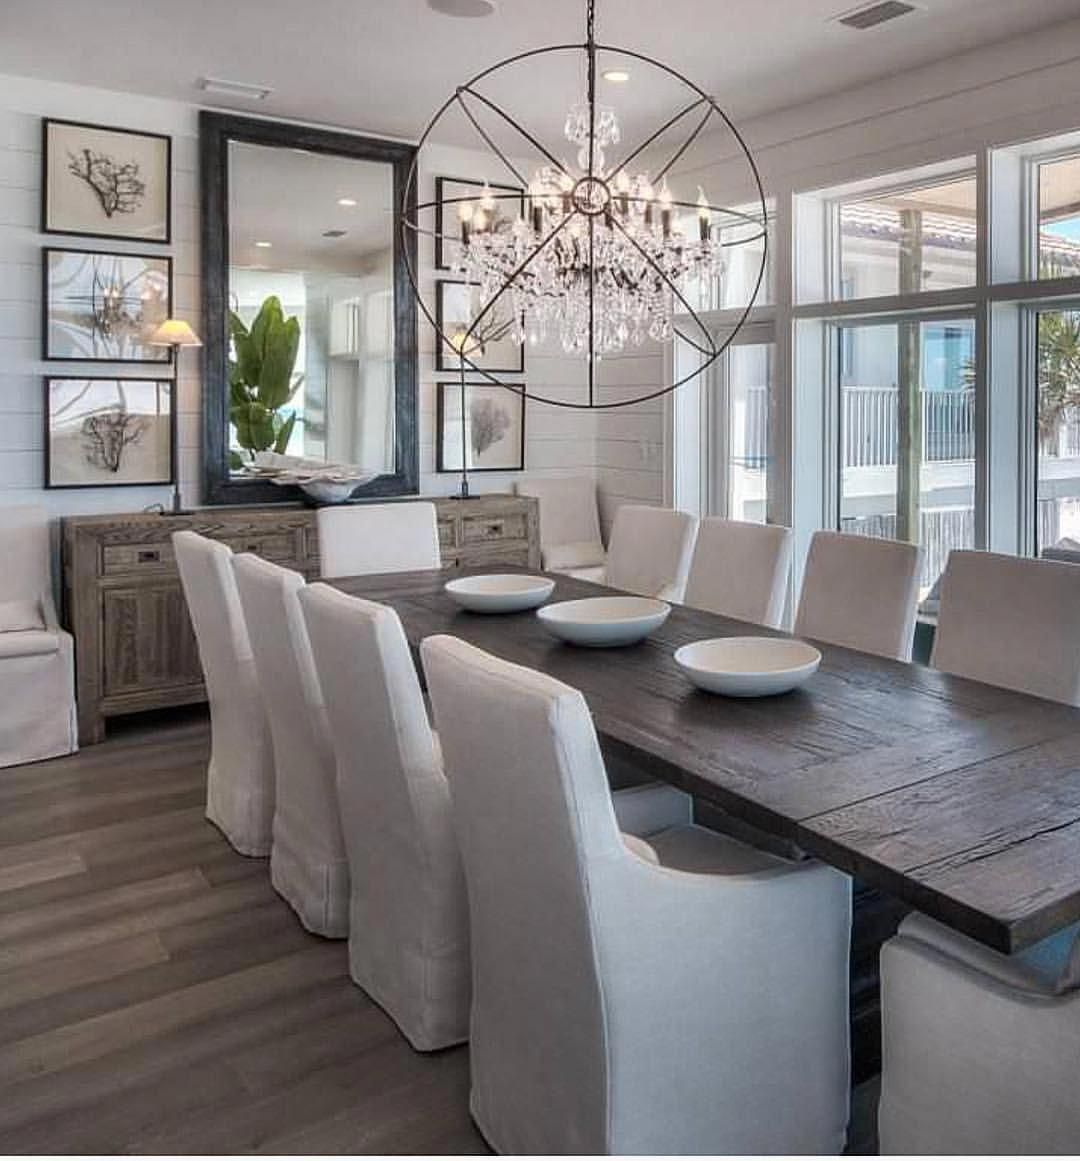 85 Charming Rustic Bedroom Ideas And Designs 4 In 2020: Some Of The Best Dining Room Lighting Inspirations Are